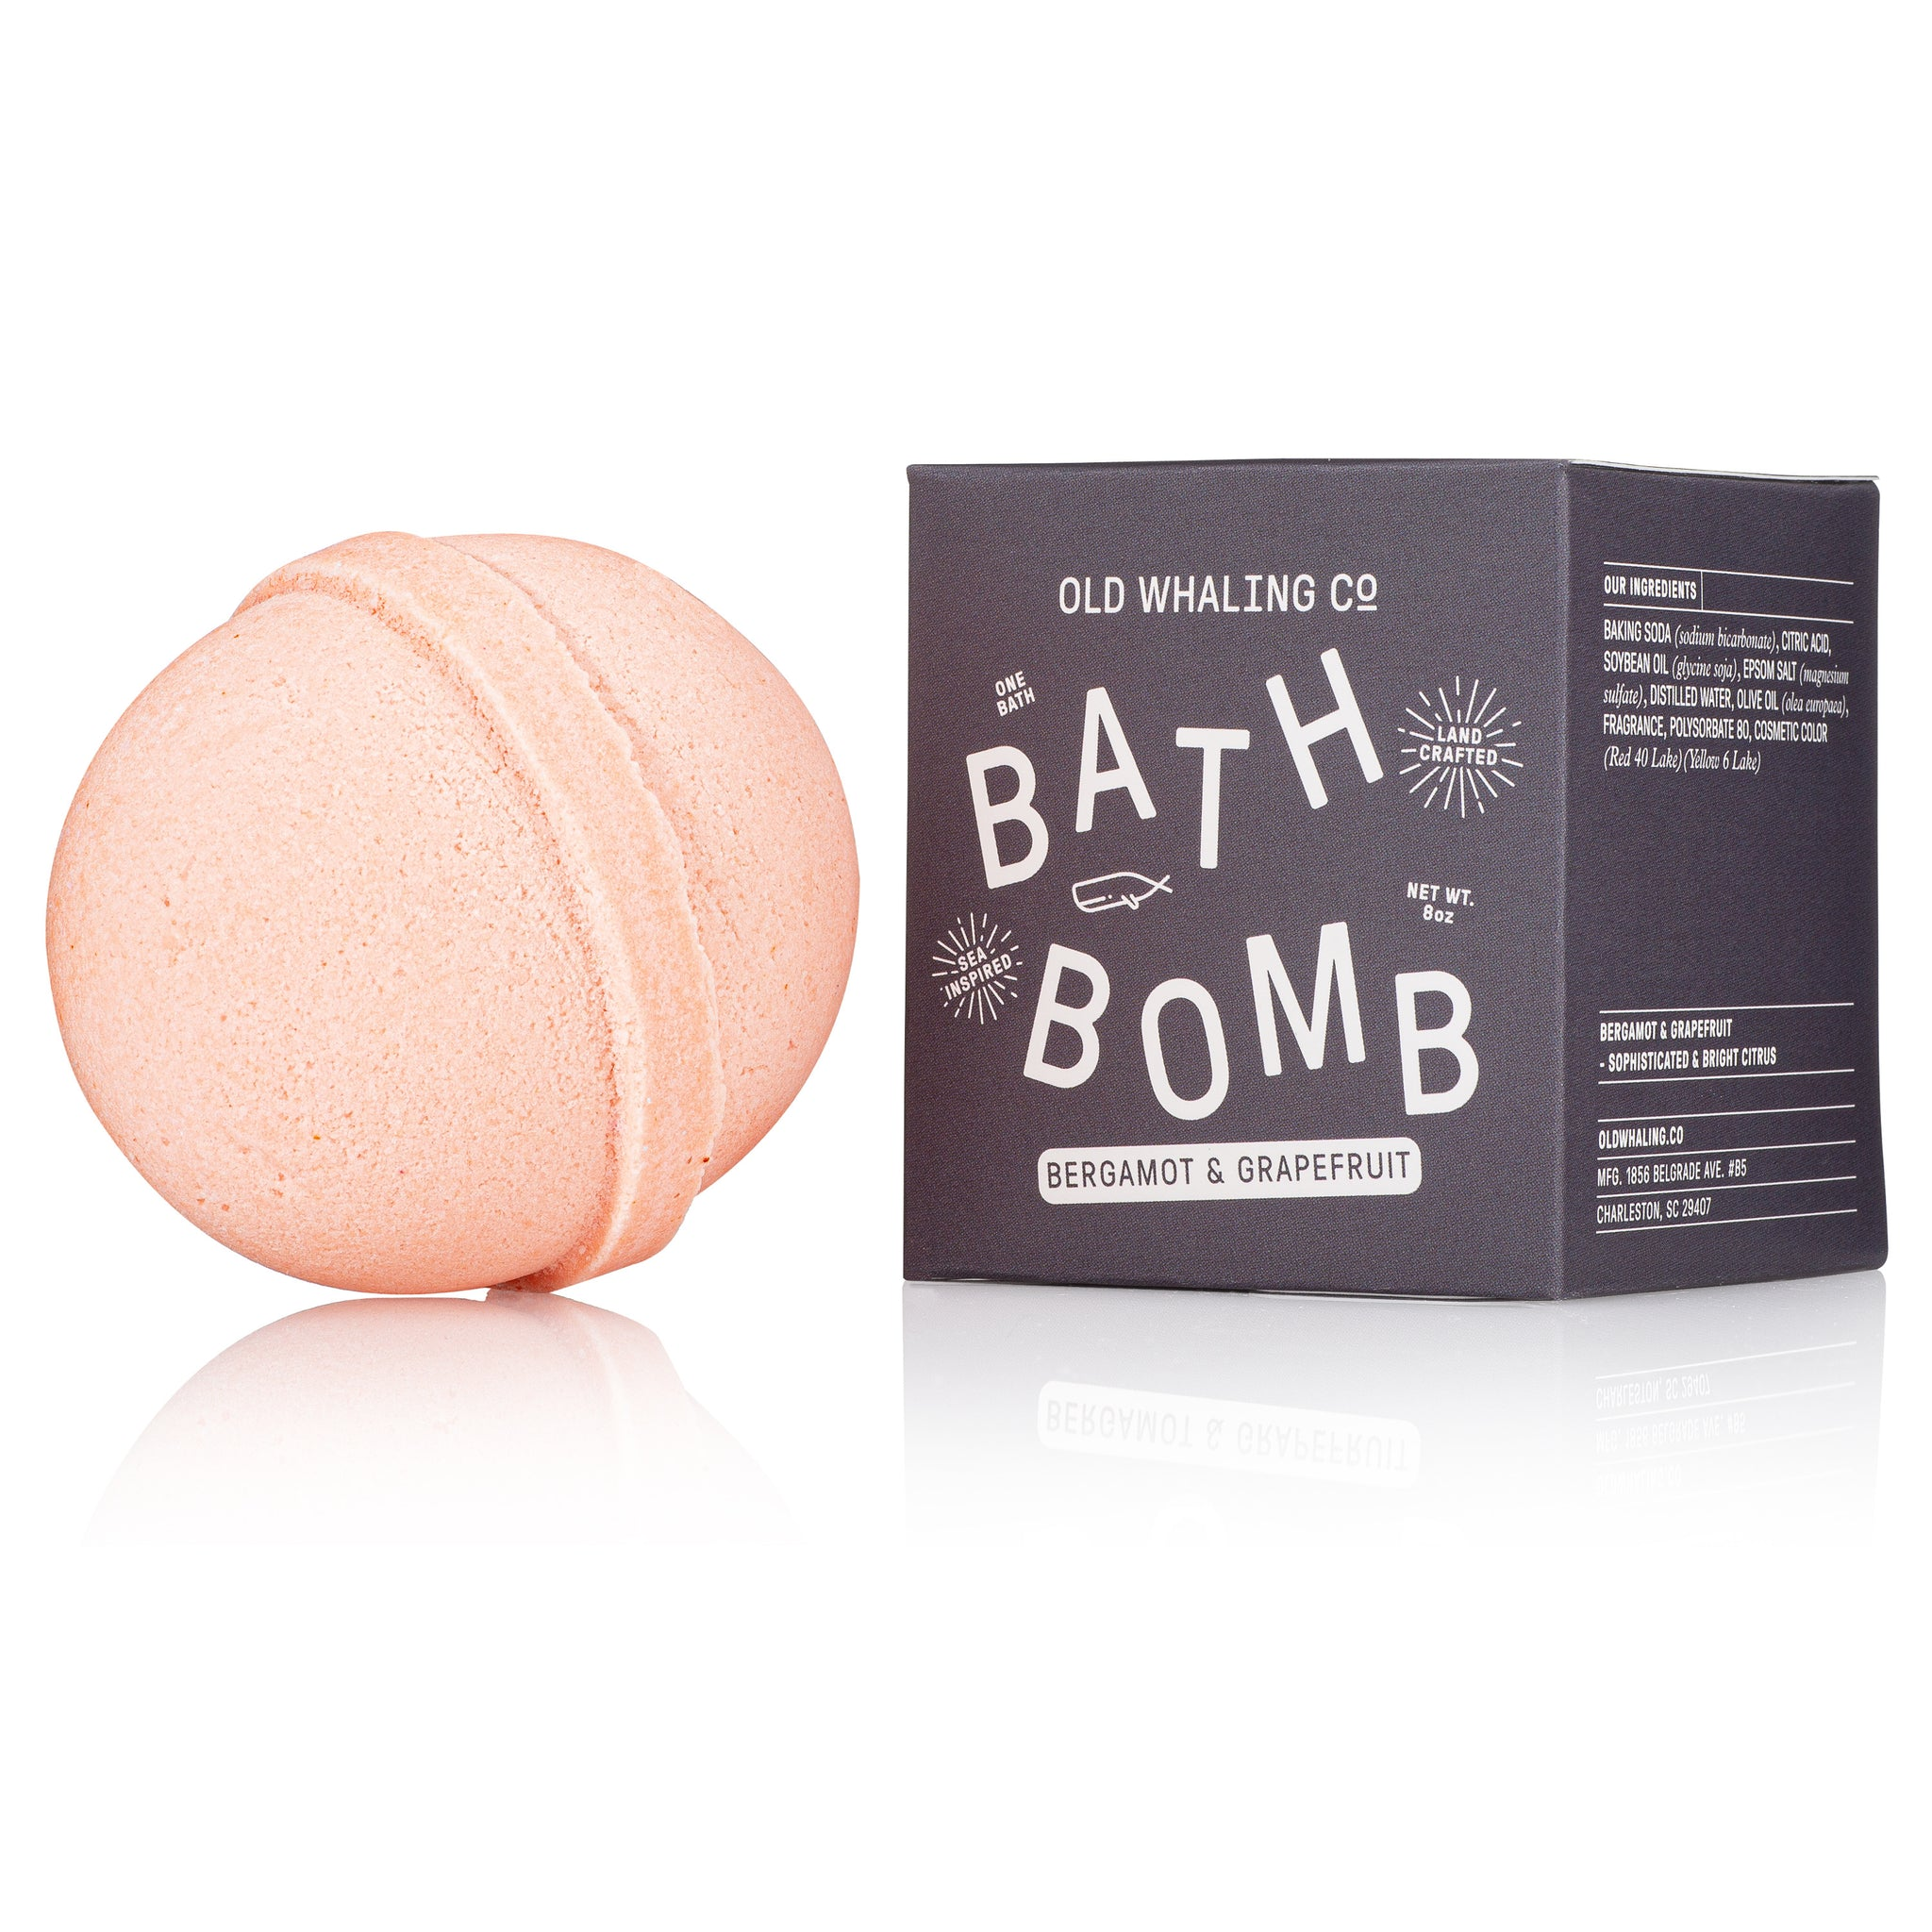 Bergamot Grapefruit Bath Bomb